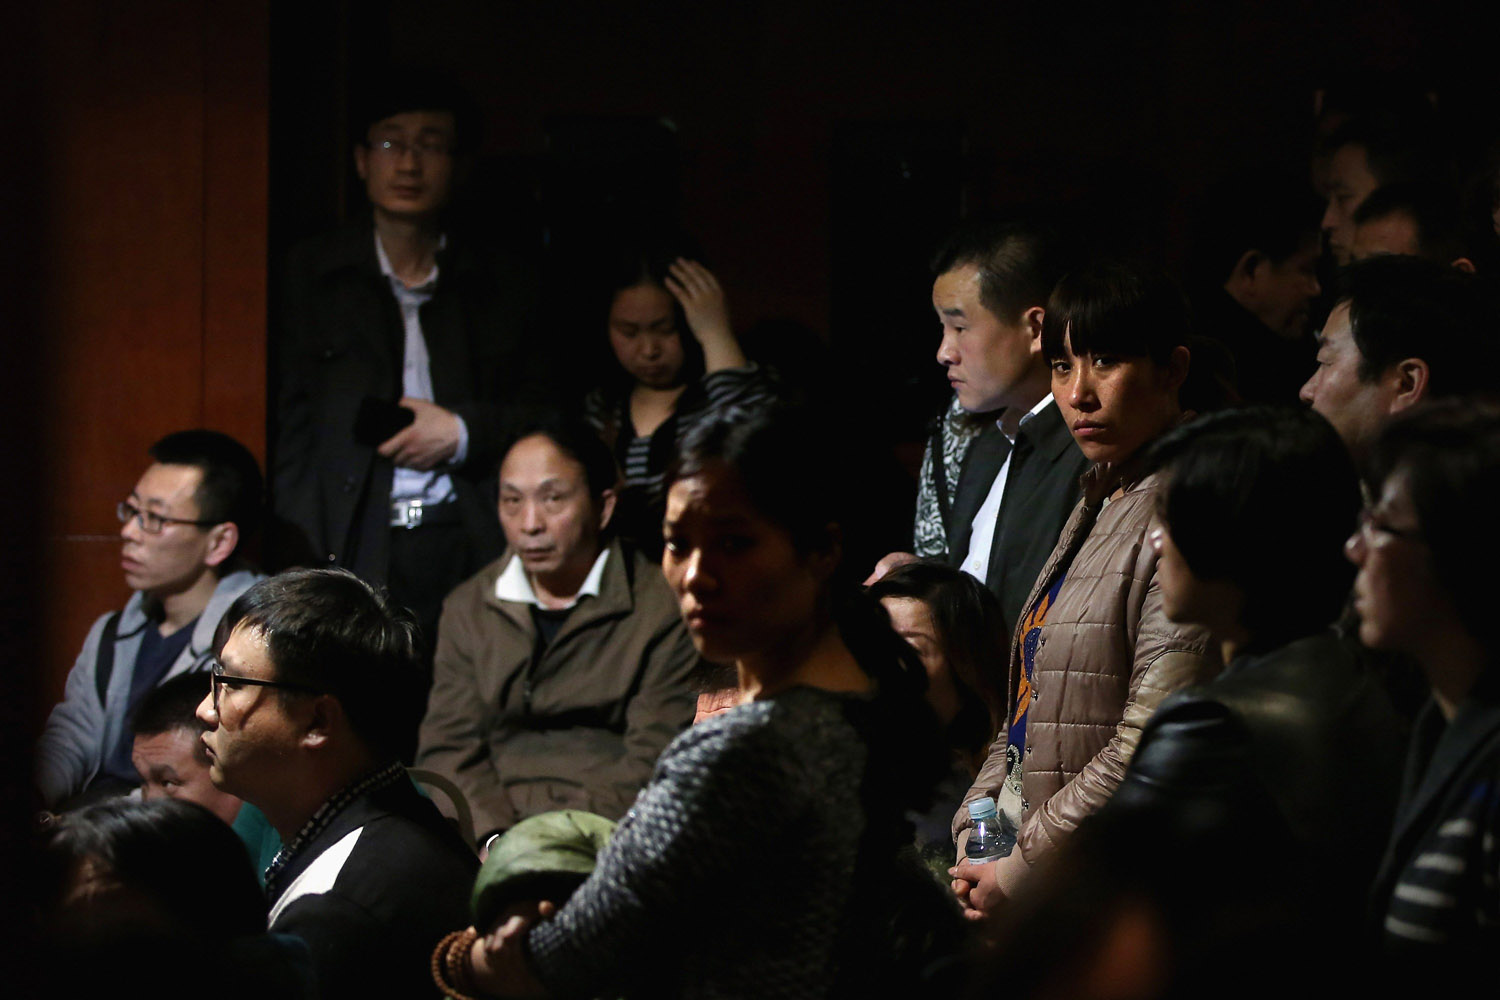 Mar. 17, 2014. Chinese relatives of the missing passengers who were travelling onboard Malaysia Airlines flight MH370 watch a television displaying a Malaysian press conference at Lido Hotel in Beijing, China. All passengers and crew are currently under investigation and 22 countries are involved in the search.